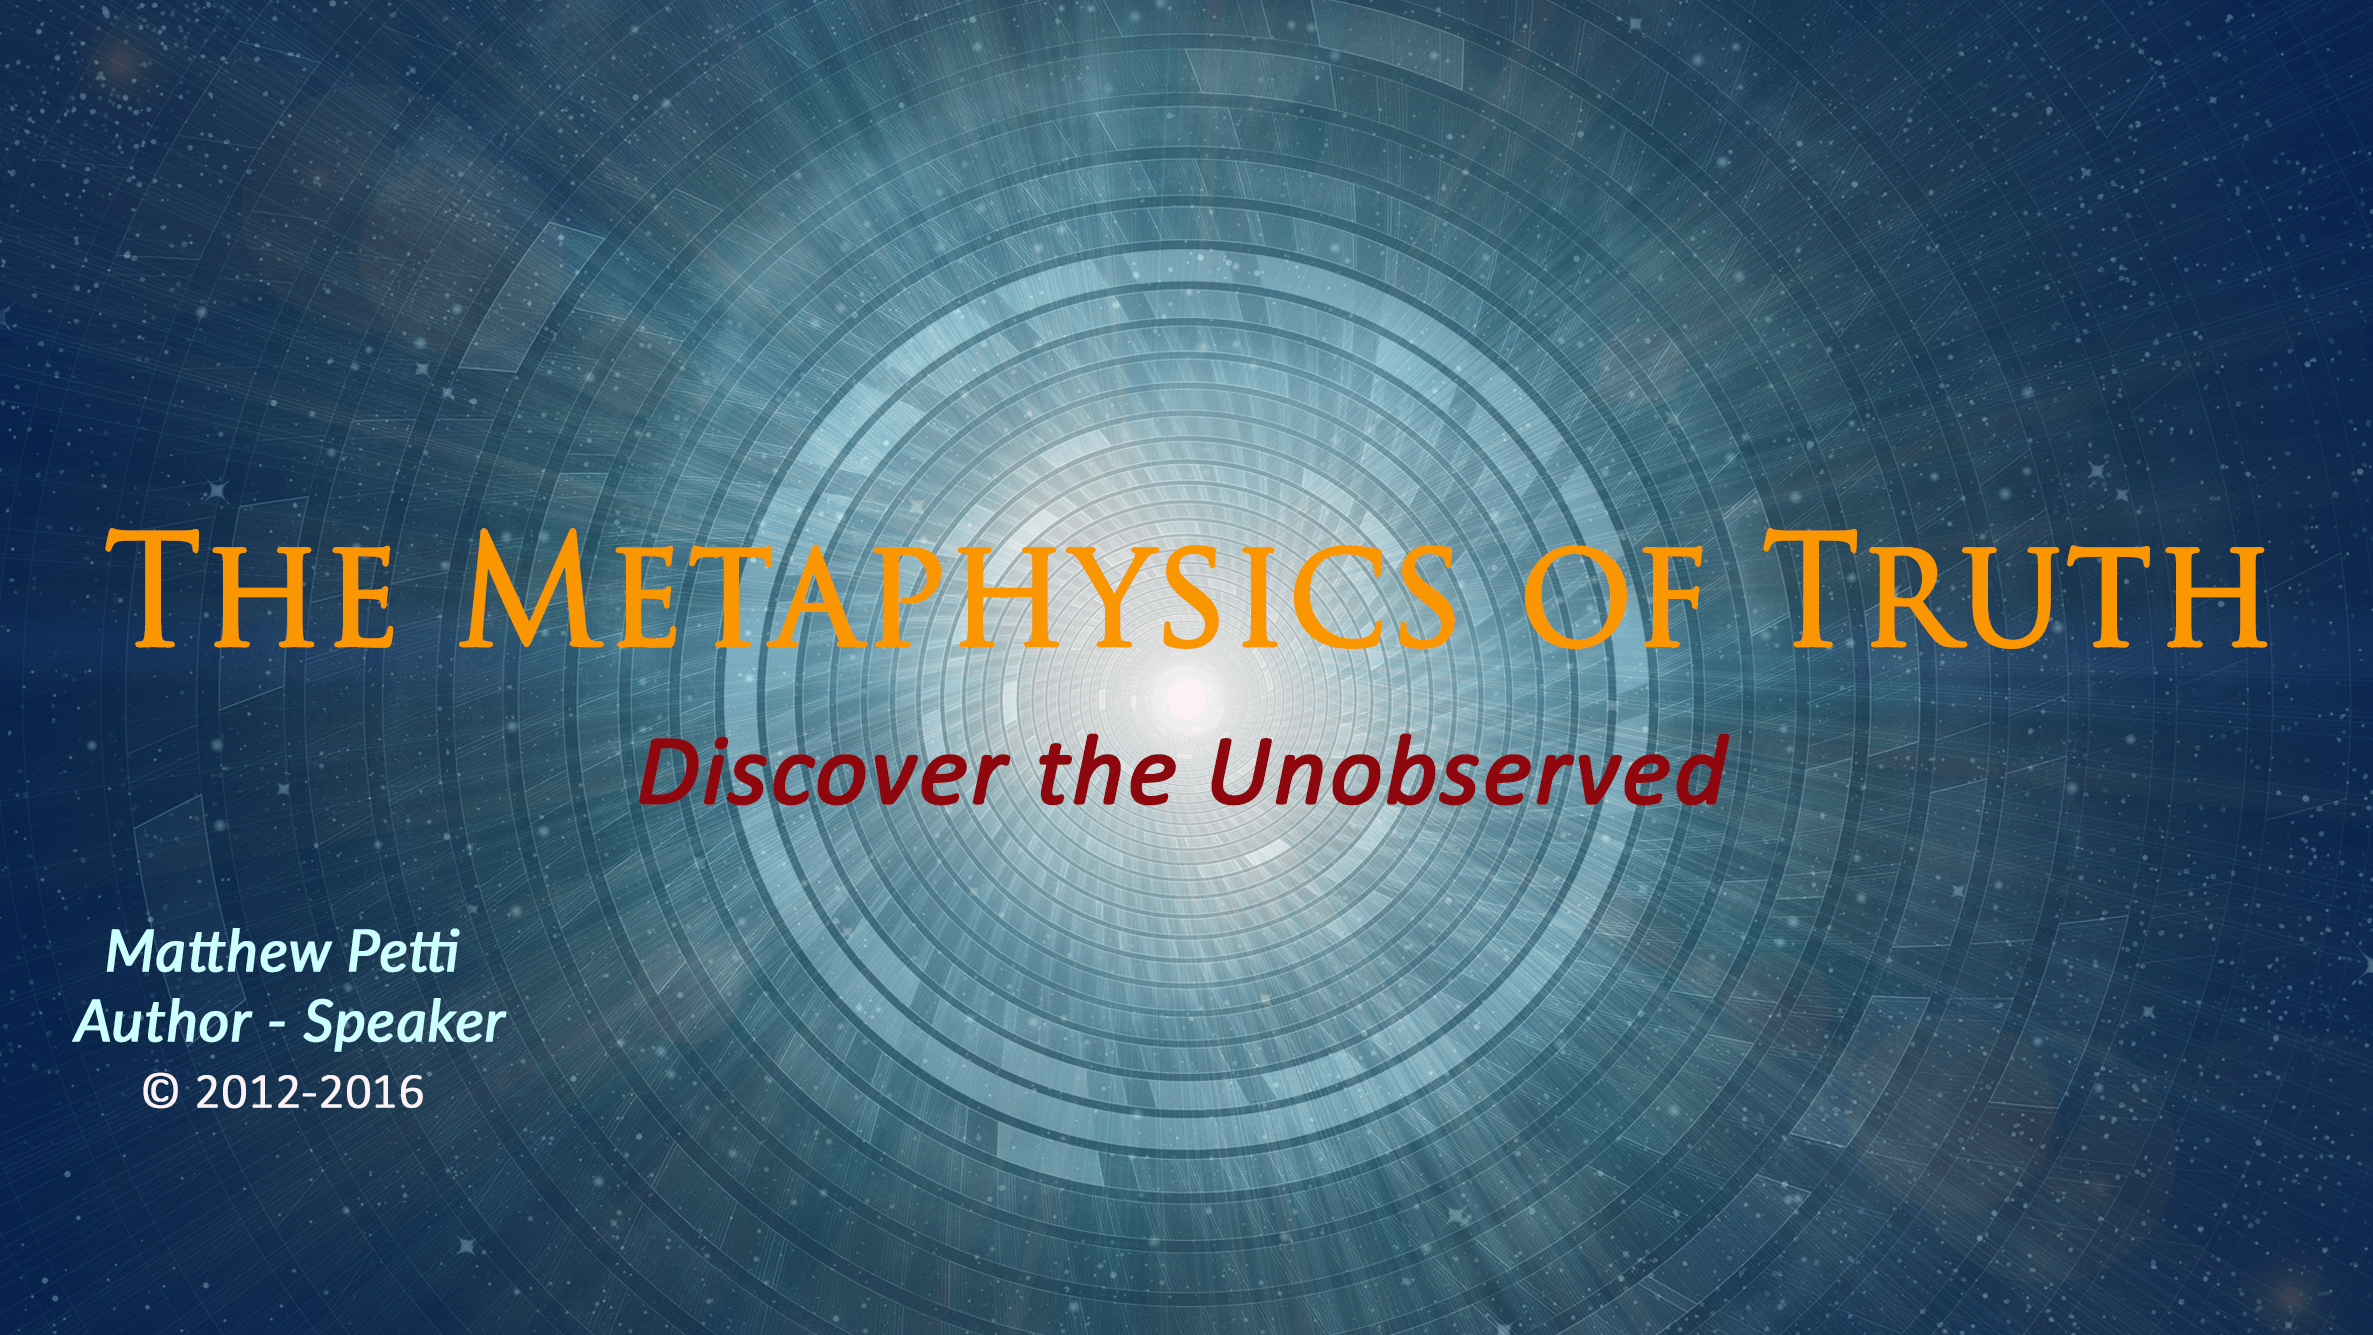 Matthew Petti - The Metaphysics of Truth - Discover what has been hidden in plain sight